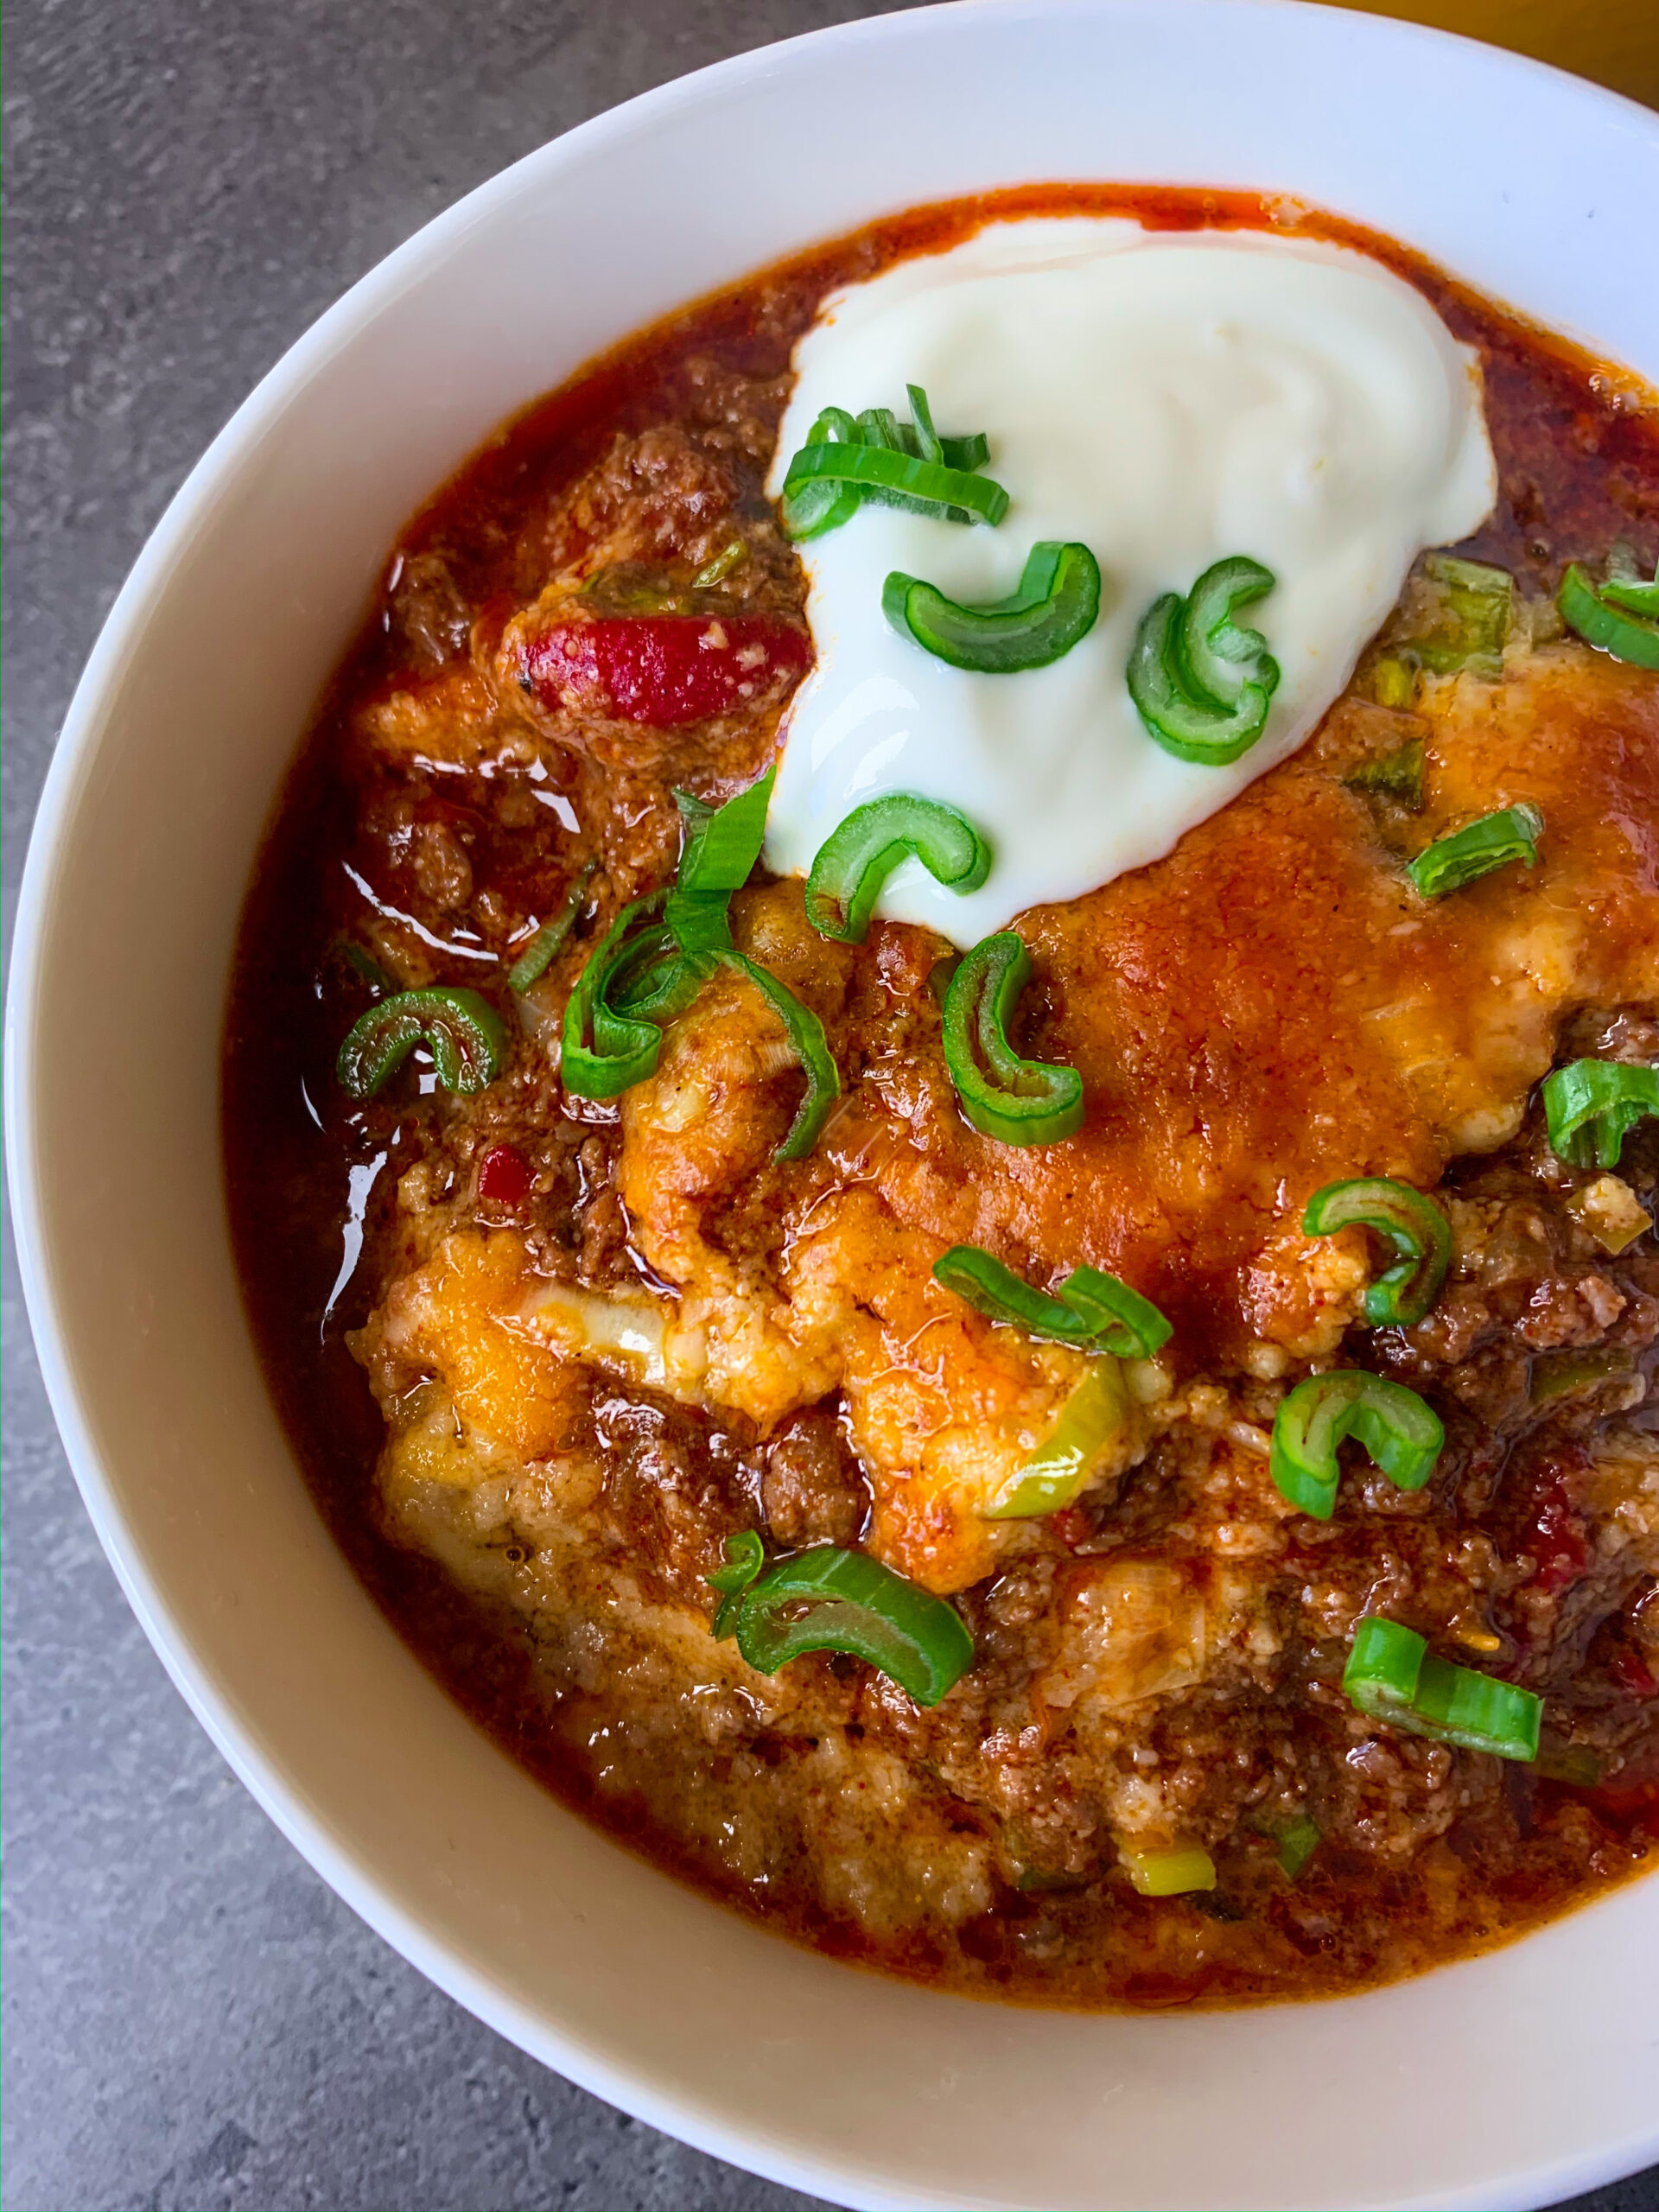 Low carb chili con carne with cheese crust in a bowl